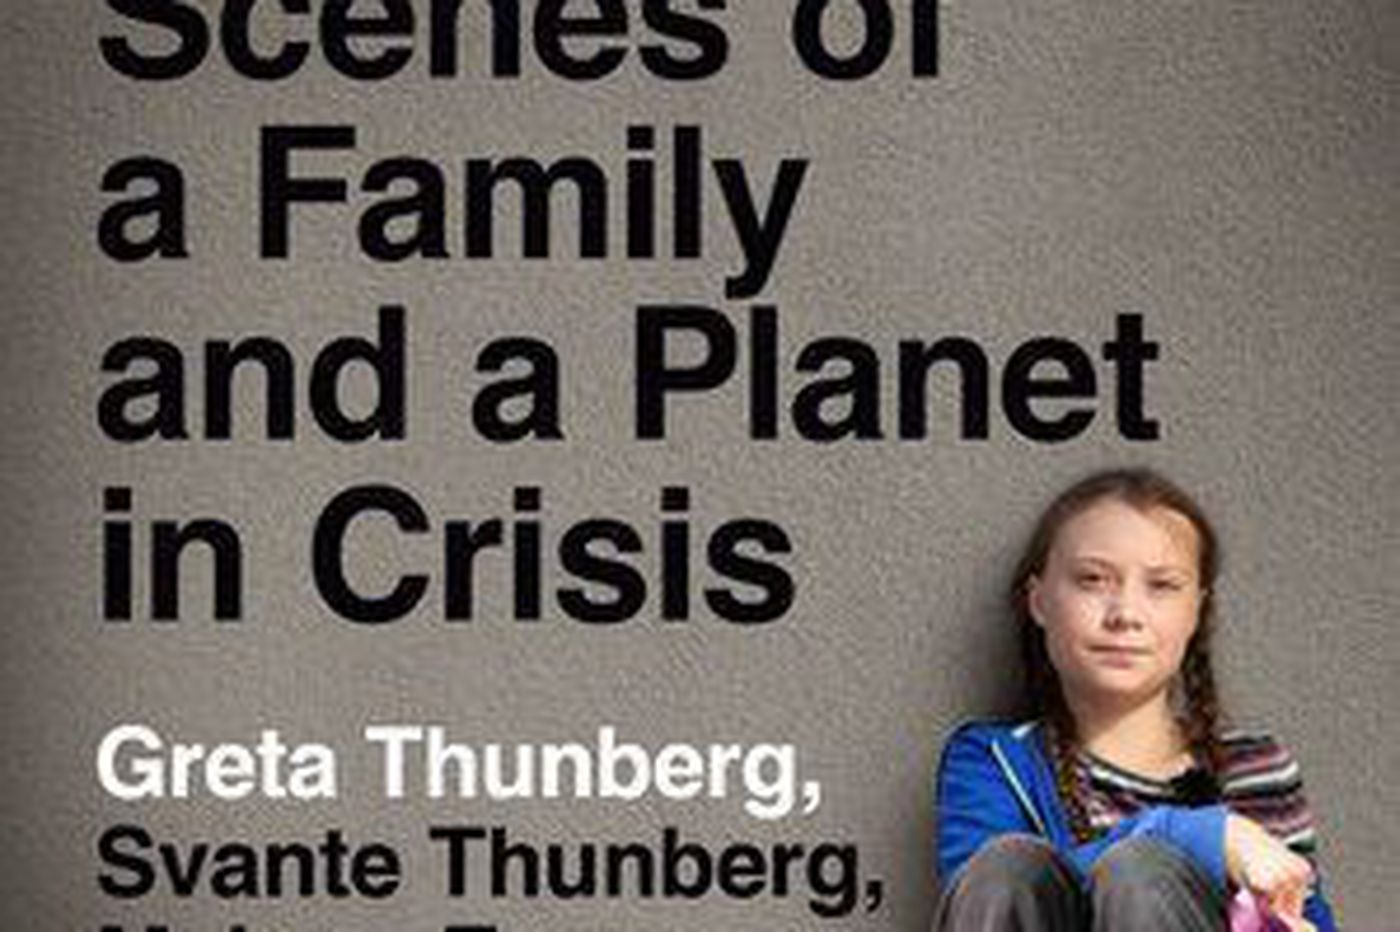 Greta Thunberg's family memoir sends an urgent message to us all | Book review